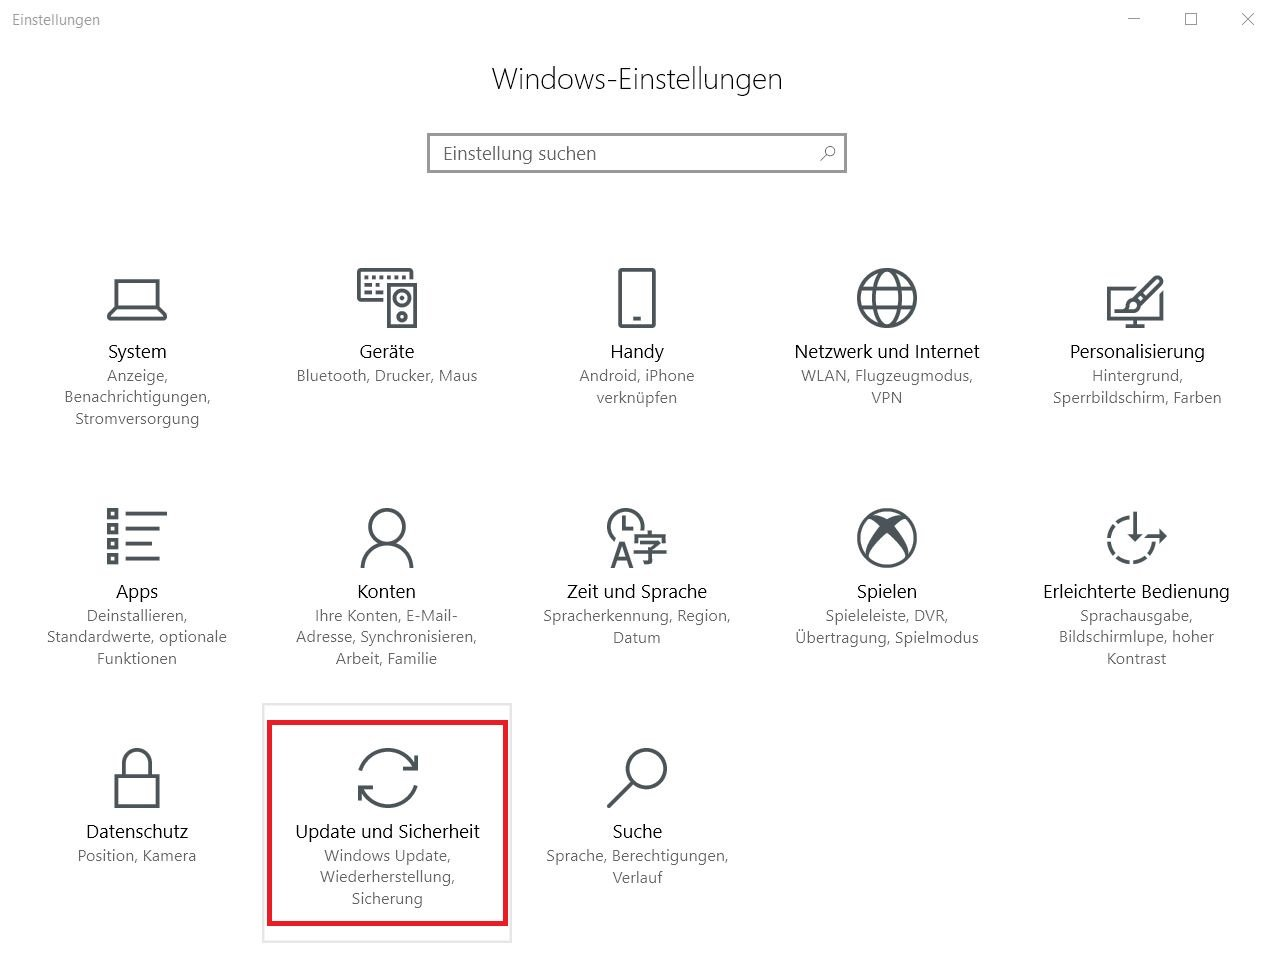 update und sicherheit - Windows 10 Internetbandbreite bei Windows Updates begrenzen